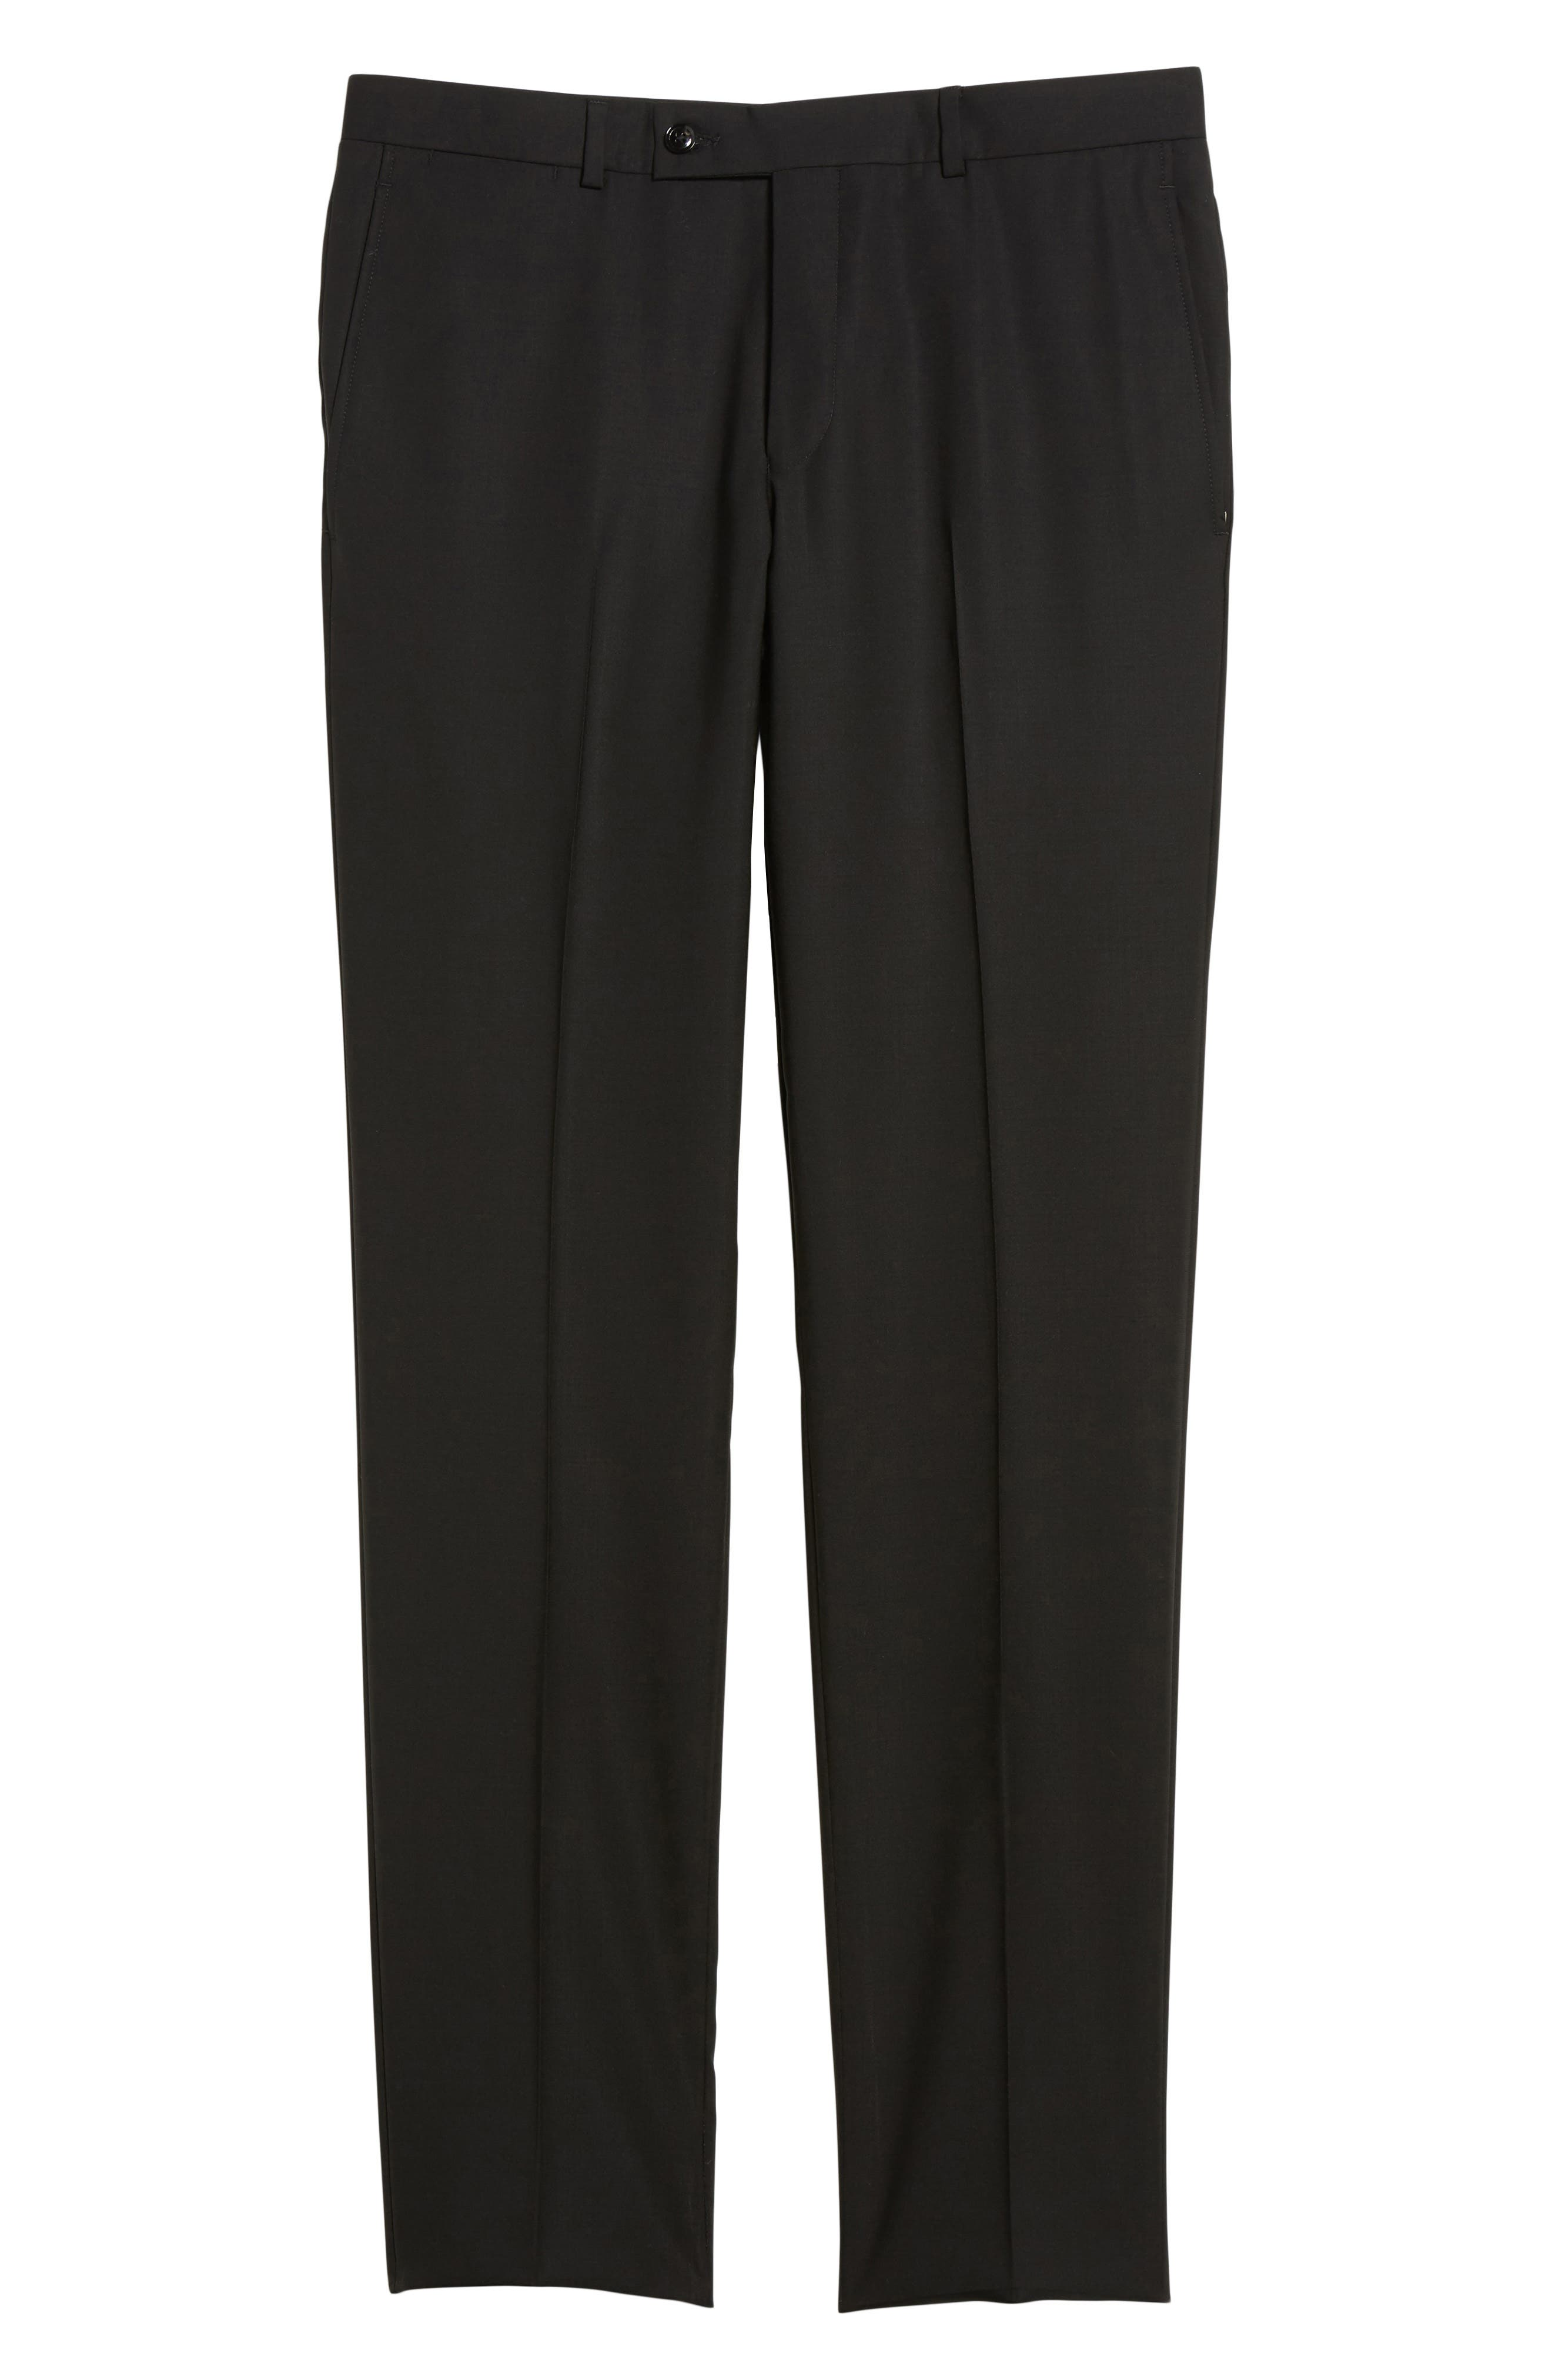 Jefferson Flat Front Solid Wool Trousers,                             Alternate thumbnail 6, color,                             Black